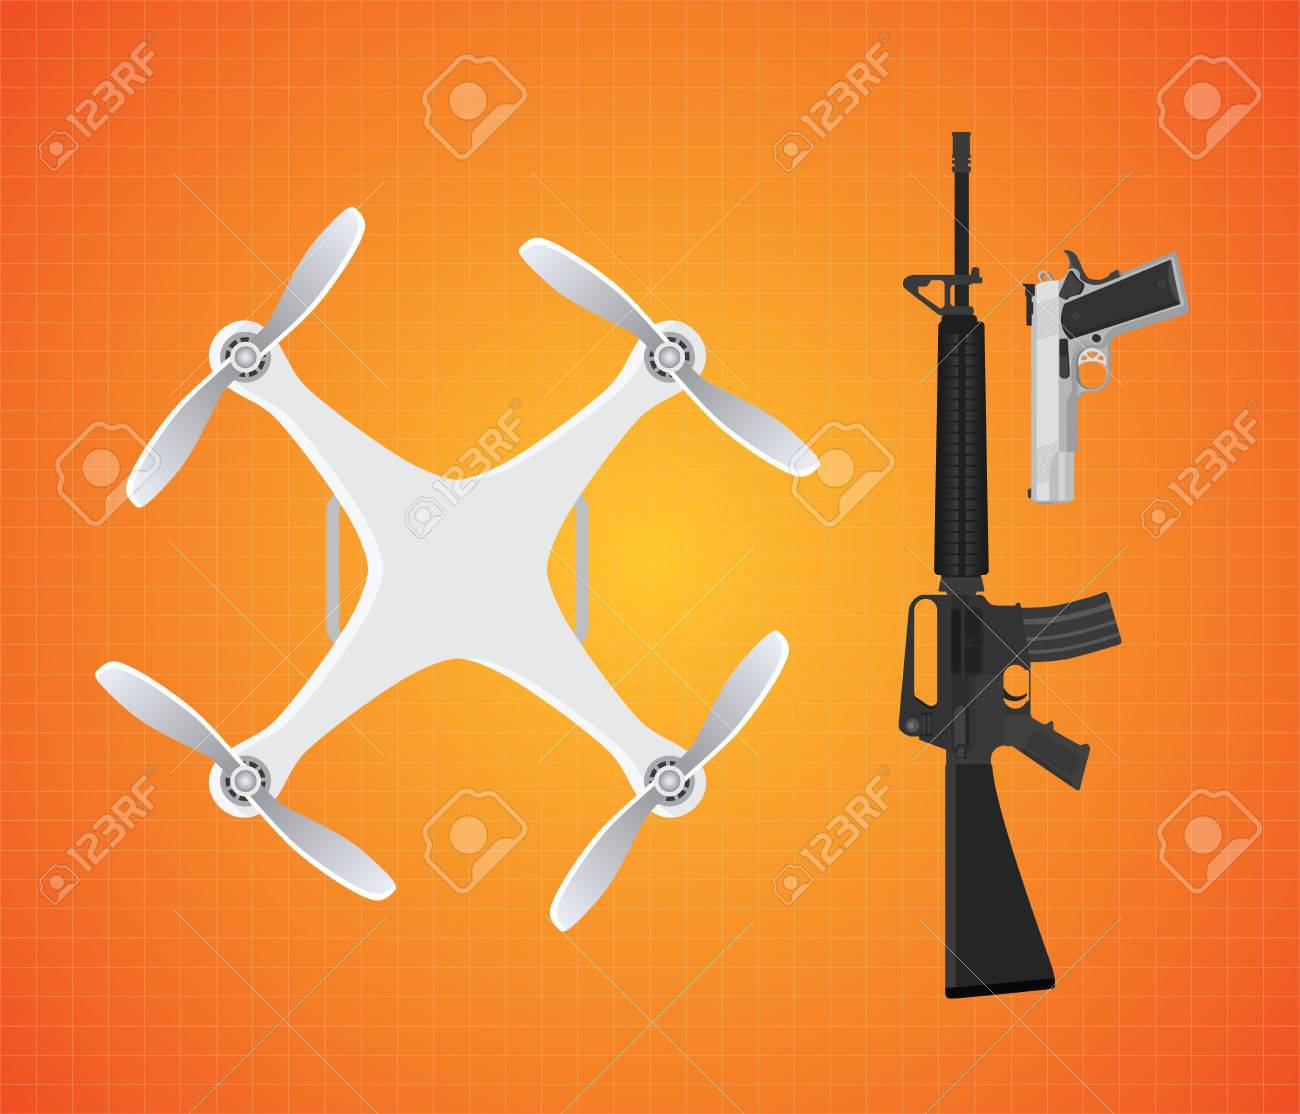 Drone With Gun Firearms Mounted With M16 And Pistol Vector Illustration Royalty Free Cliparts Vectors And Stock Illustration Image 54208504